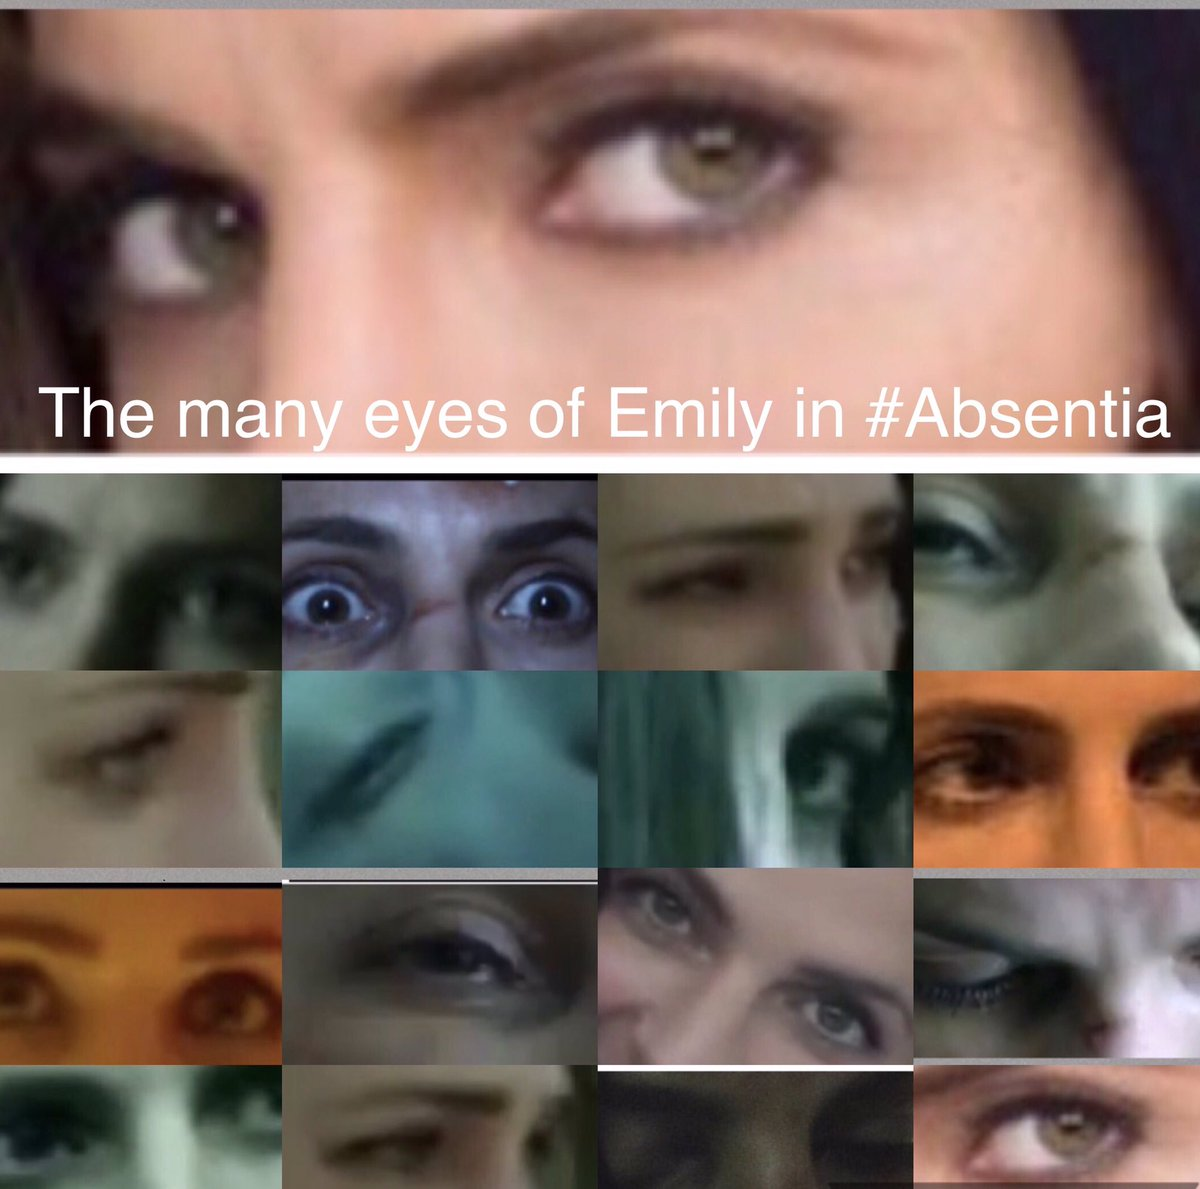 My version of &quot;the eyes of Emily Byrne&quot; #Absentia @Stana_Katic @AbsentiaSeries  the expressions of her eyes say everything<br>http://pic.twitter.com/XaKCIJi0t1